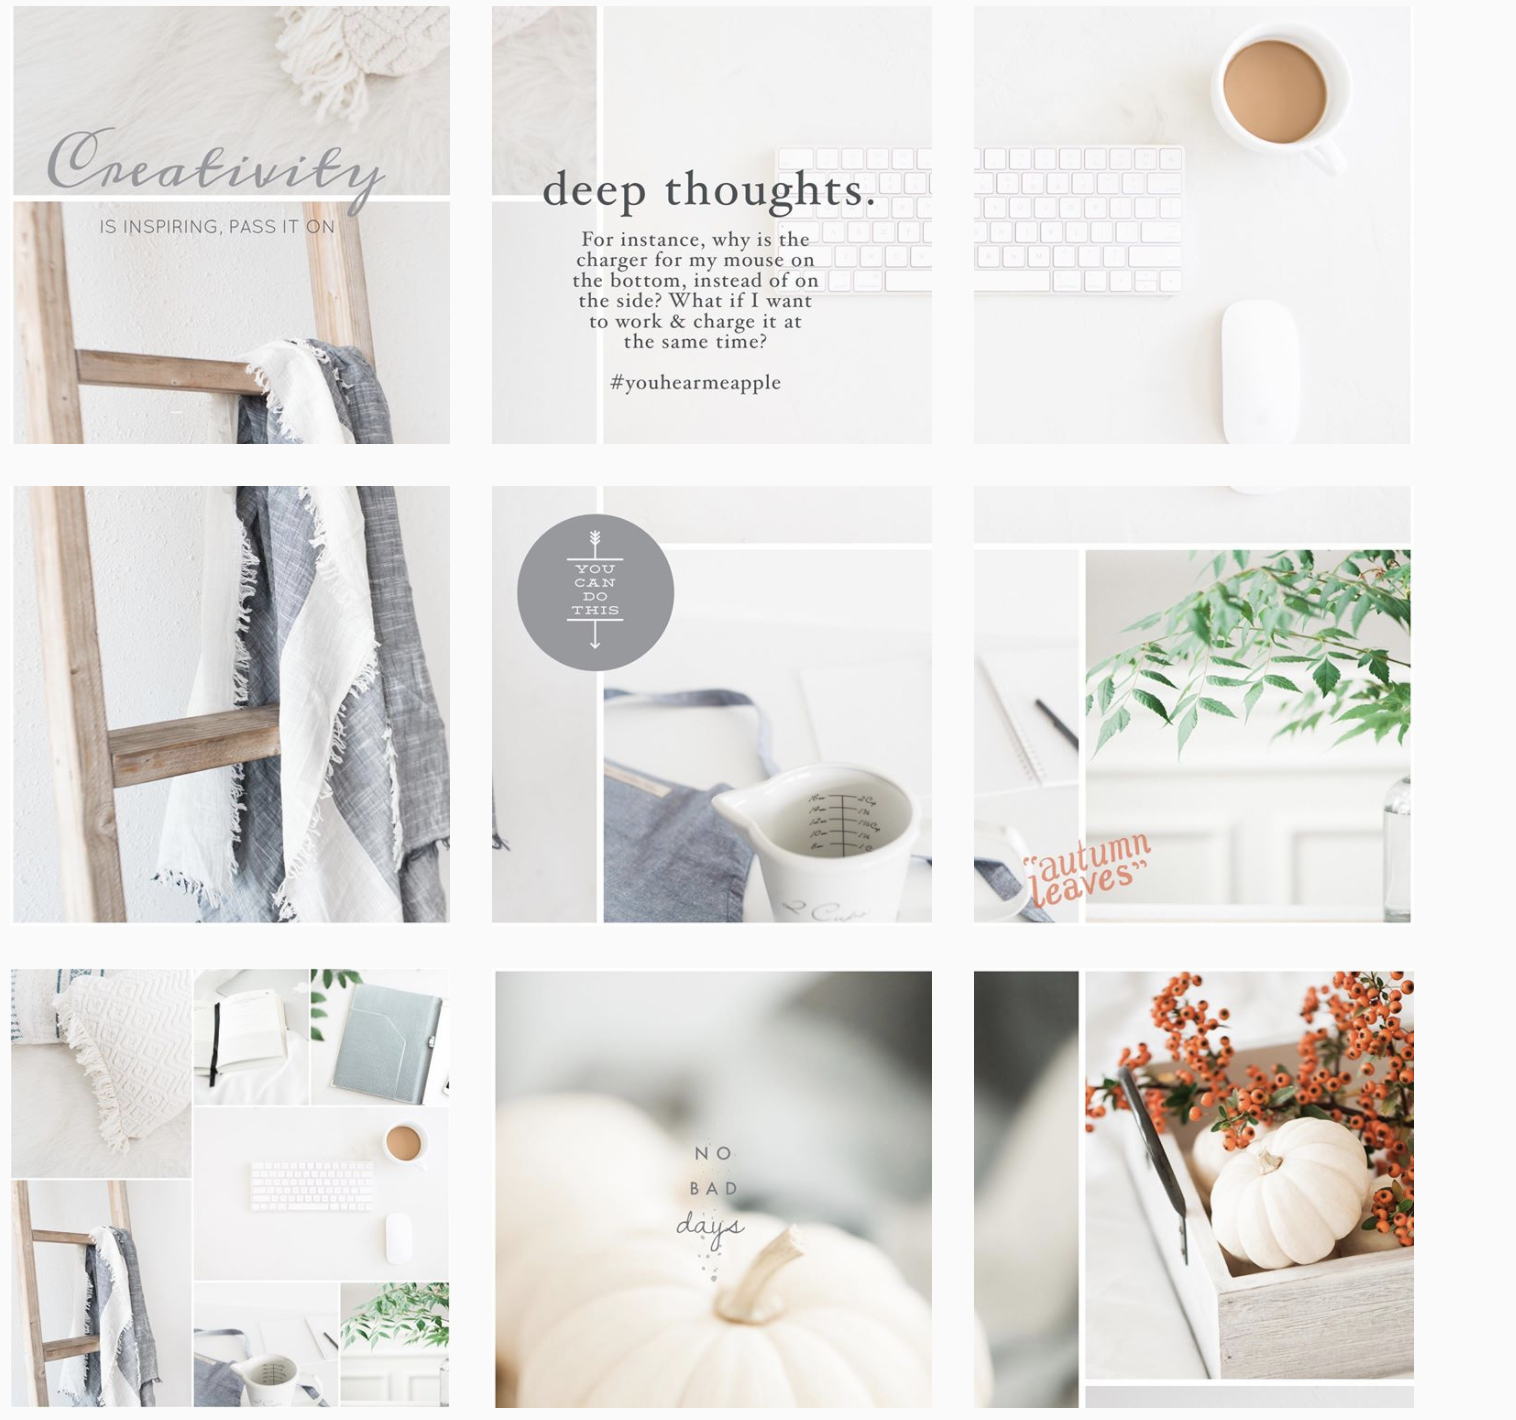 9 Brilliant Instagram Feed Ideas That Can Make Your Profile Standout Sked Social